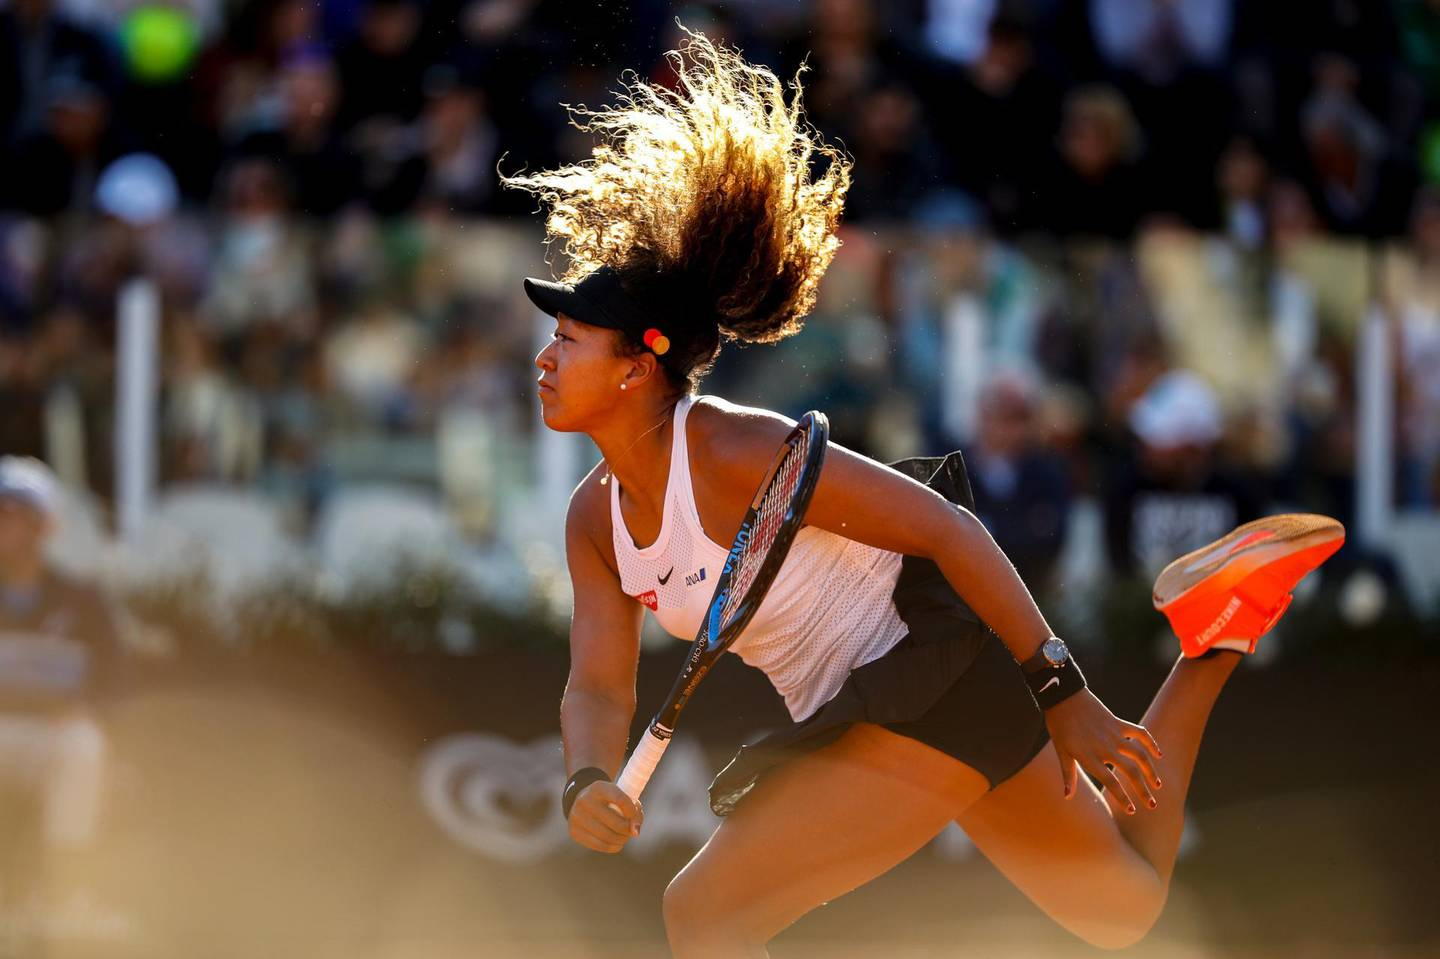 ROME, ITALY - MAY 16: Naomi Osaka of Japan serves against Mihaela Buzarnescu of Romania in their Women's Singles Round of 16 match during Day Five of the International BNL d'Italia at Foro Italico on May 16, 2019 in Rome, Italy. (Photo by Adam Pretty/Getty Images) ***BESTPIX***